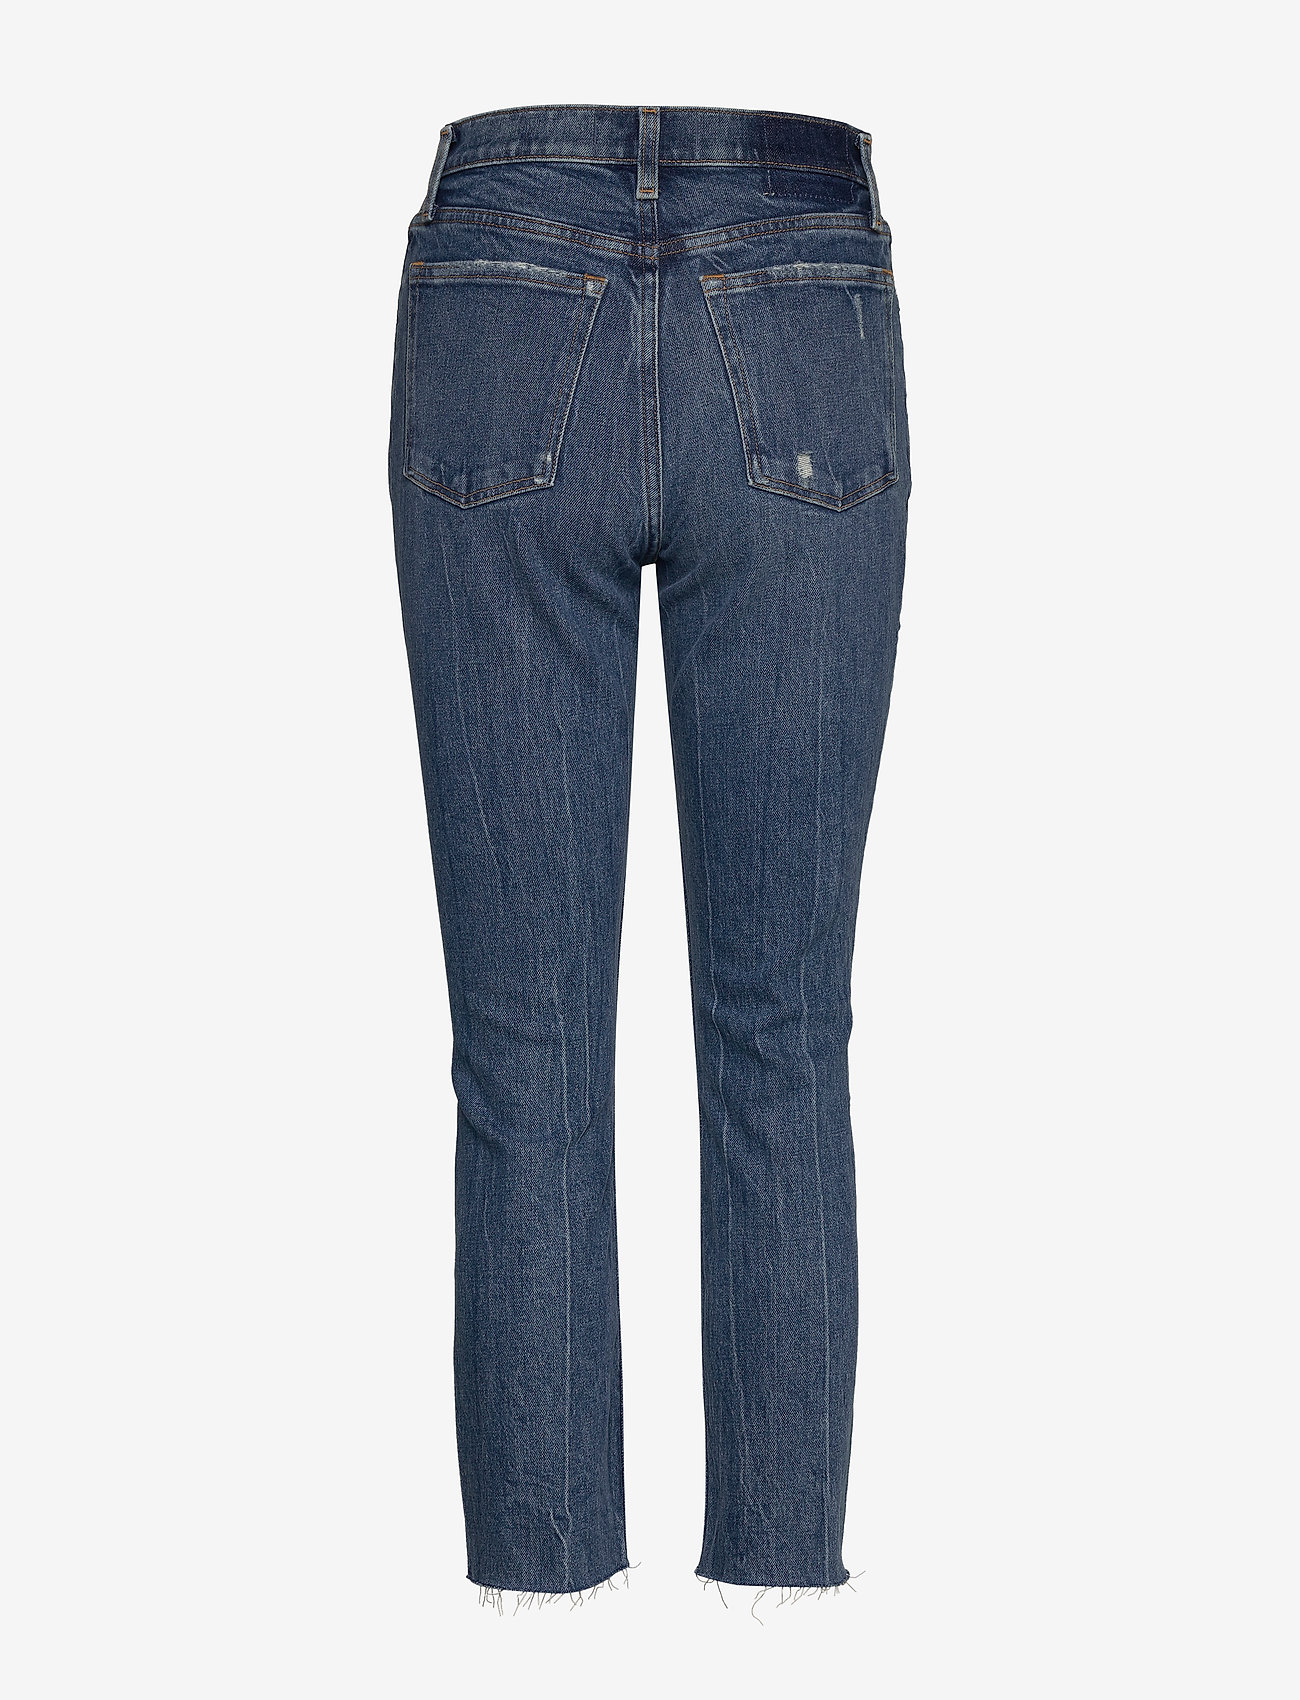 Abercrombie & Fitch - Mom Jeans - mom-jeans - dark destroy - 1